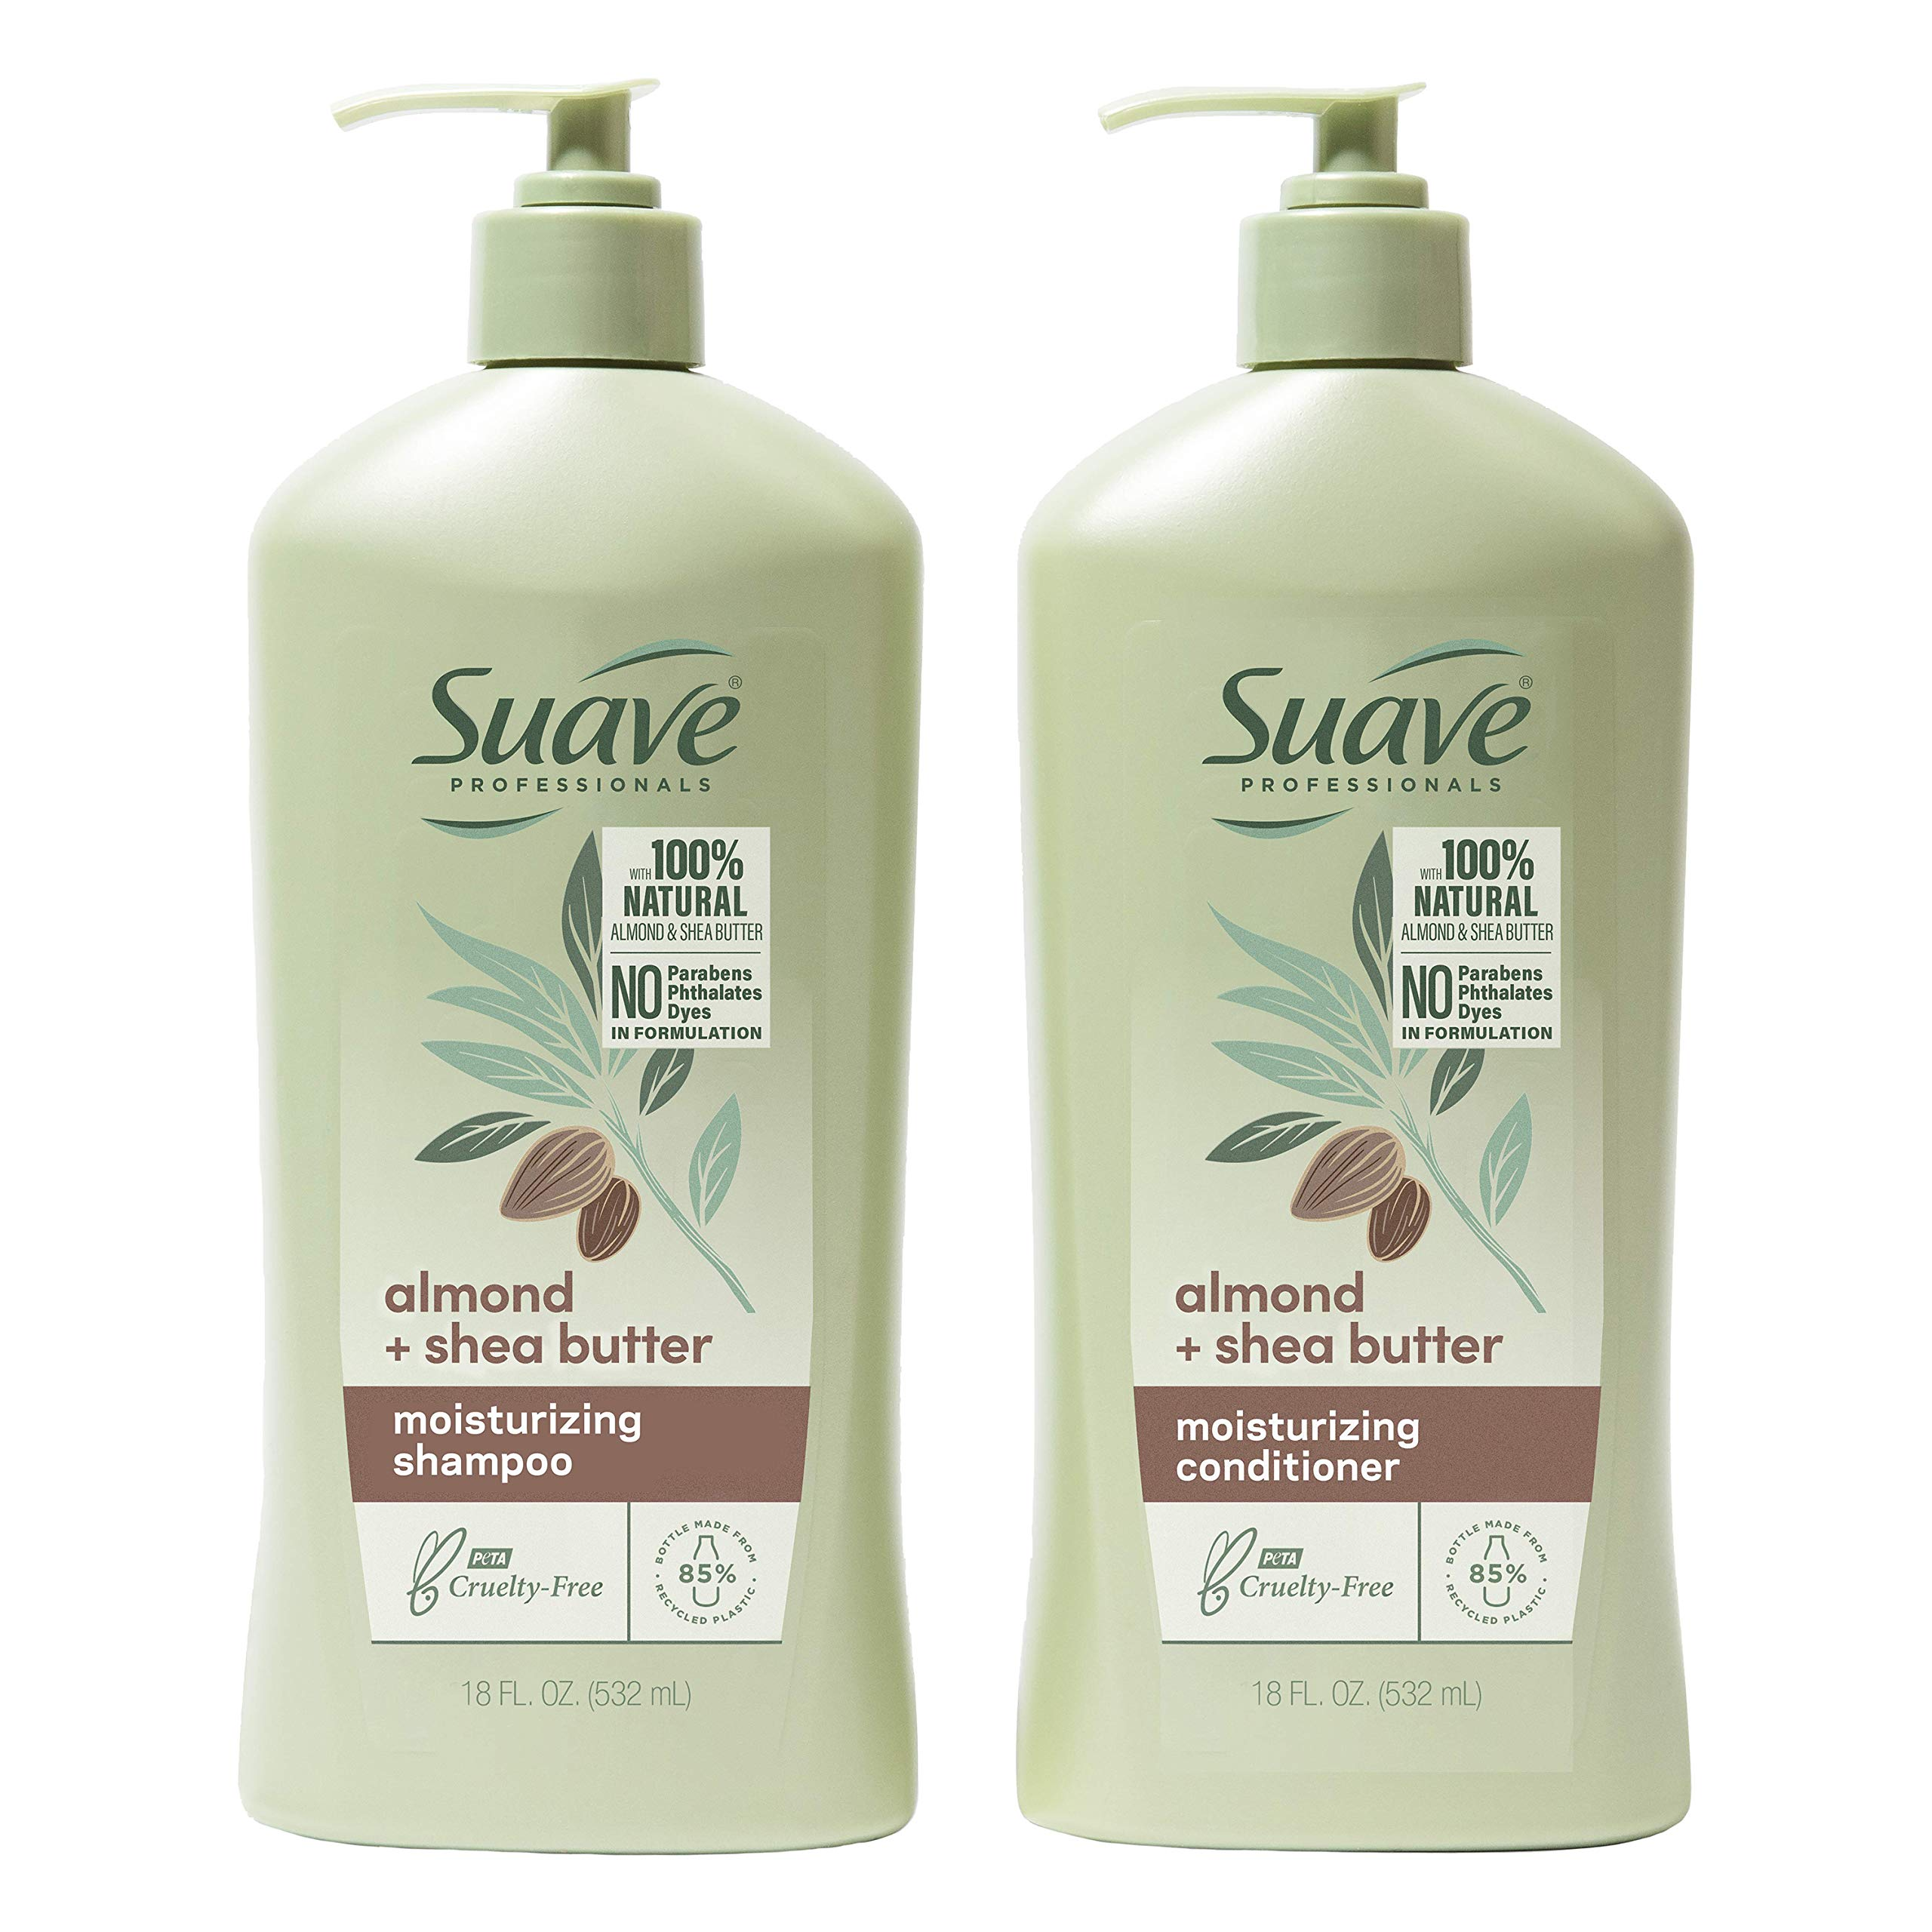 Suave Professionals Moisturizing Shampoo and Conditioner for Dry Hair Almond and Shea Butter Paraben-free and Dye-free 18 oz, 2 Count